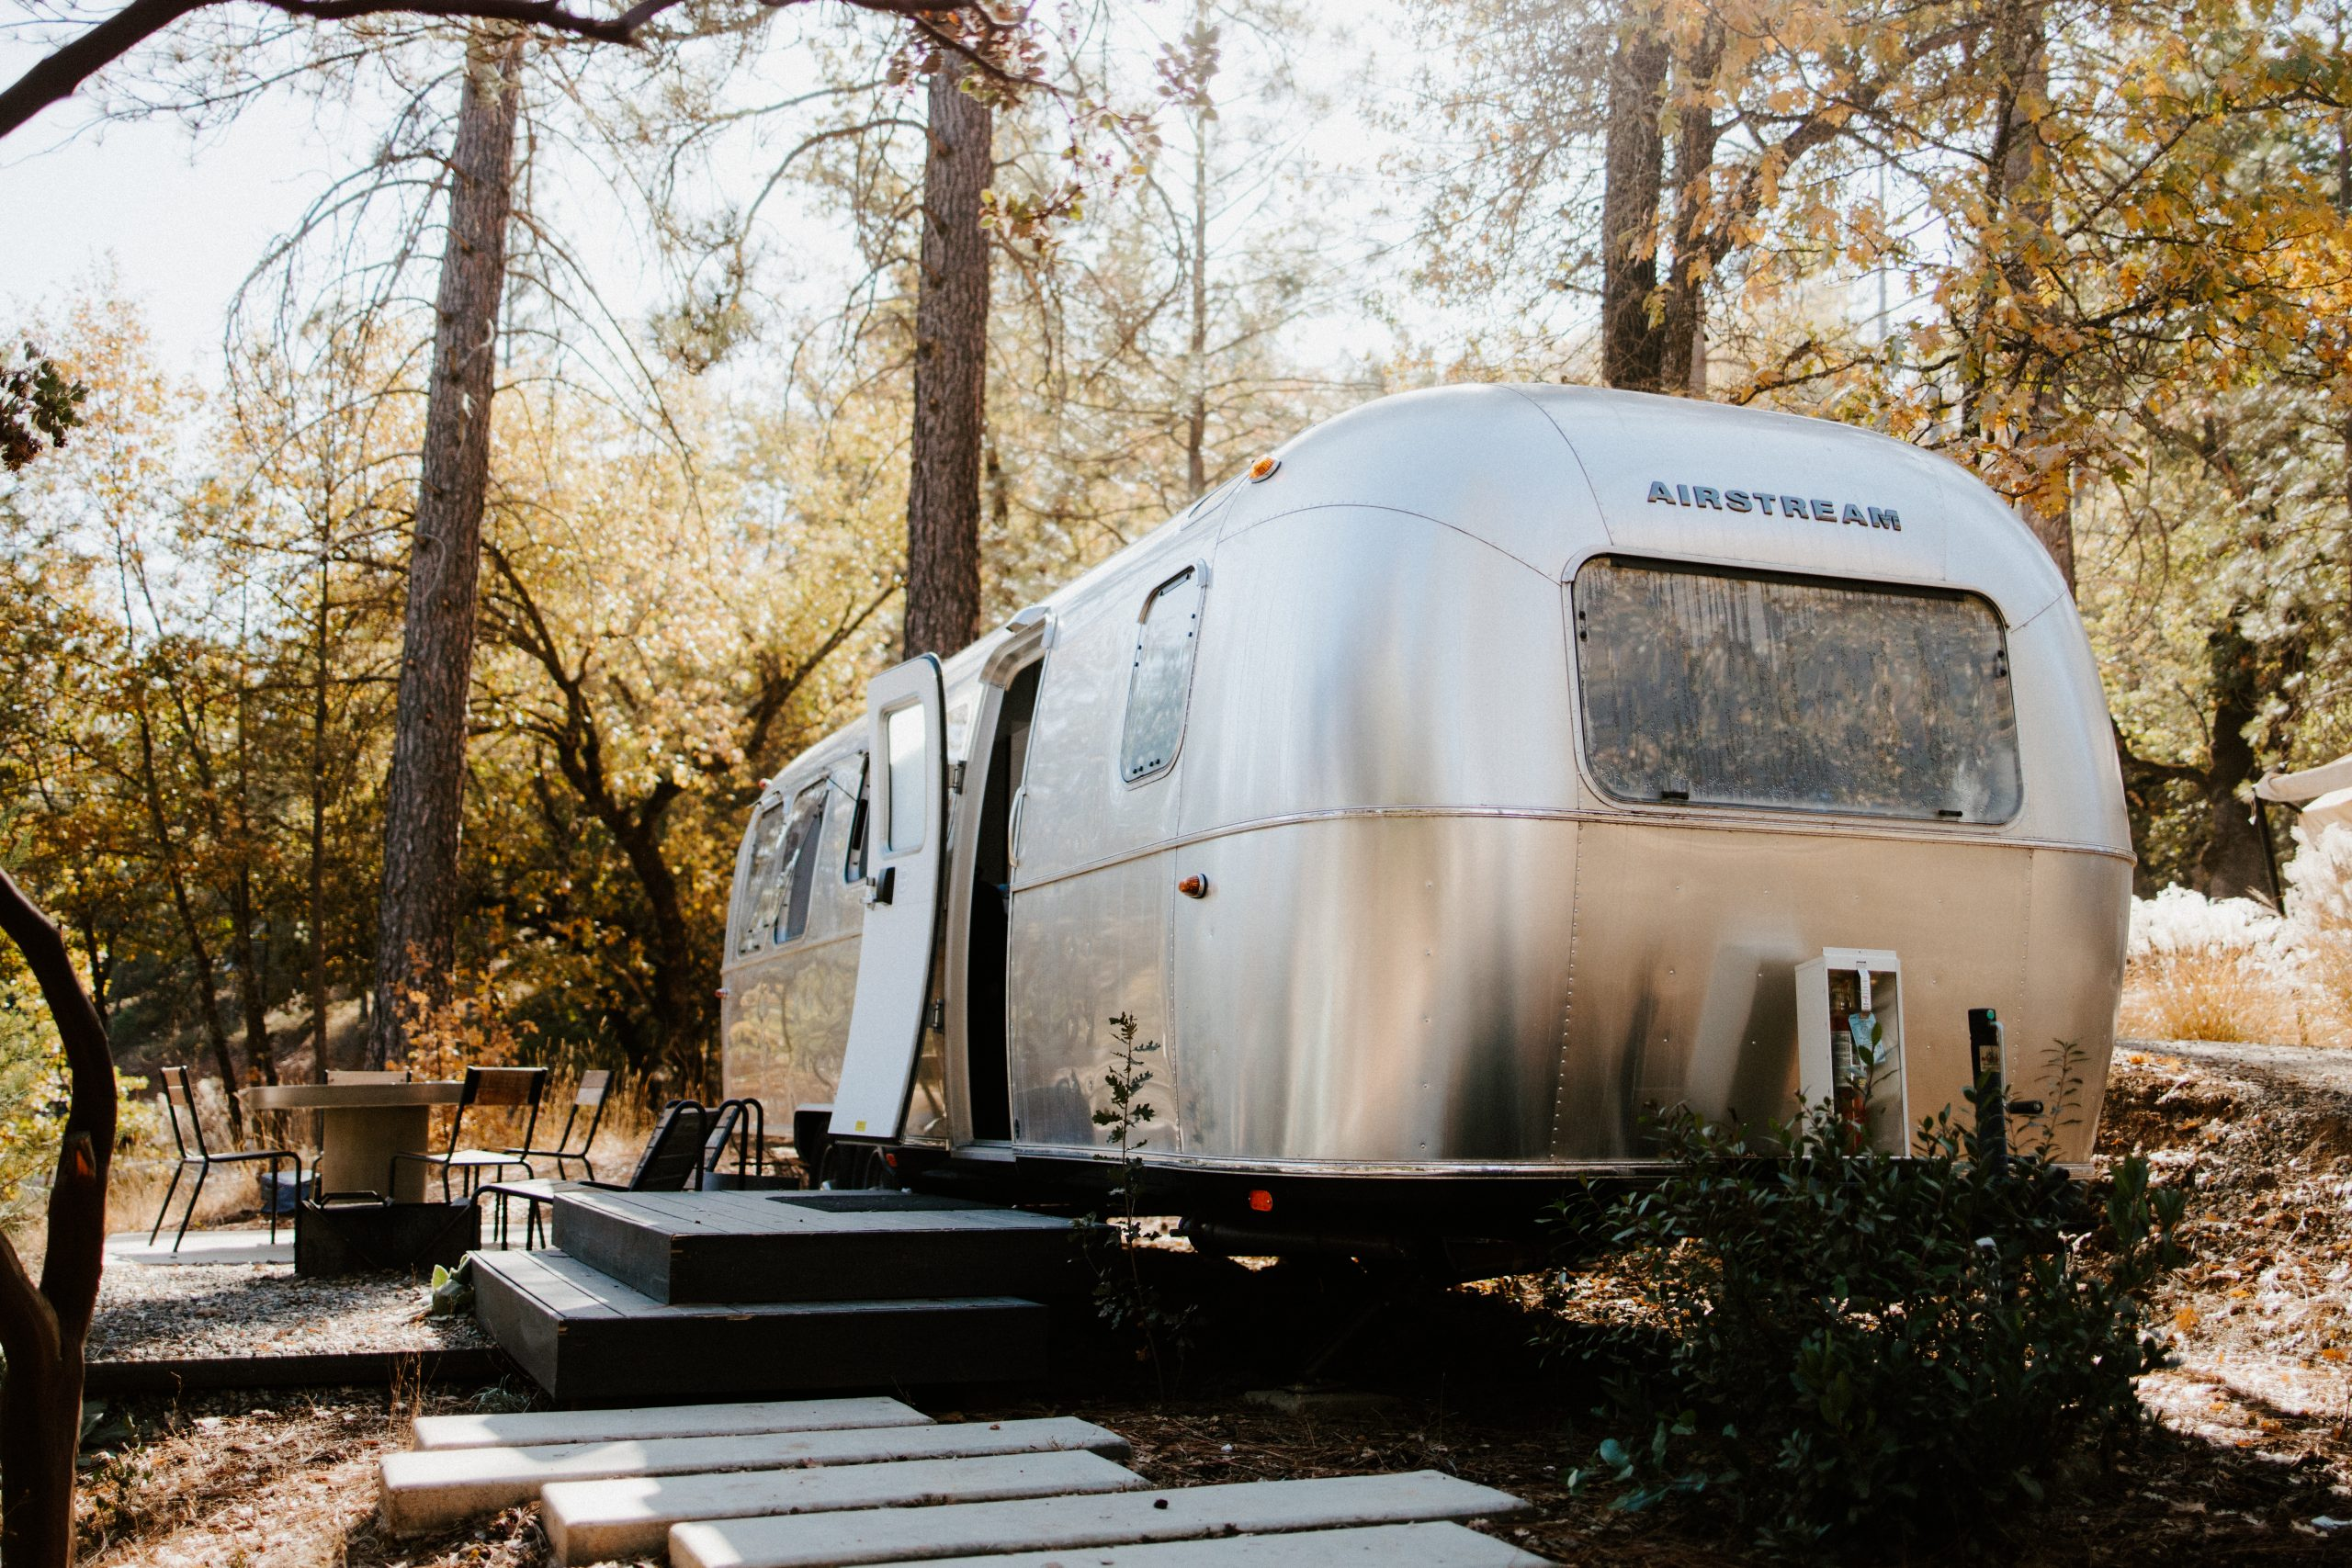 Airstream Camping in Yosemite National Park